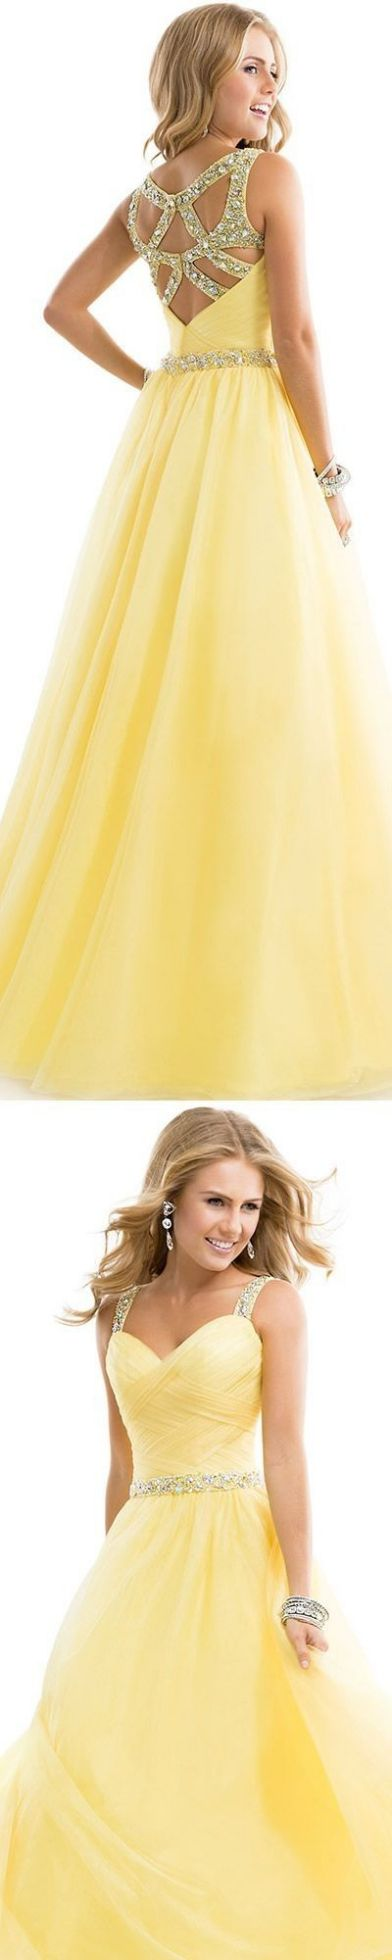 Beading Straps Floor Length Yellow Prom Dress Prom Dress Tulle Ball Gown With Jeweled Straps Open Back prom dress,272